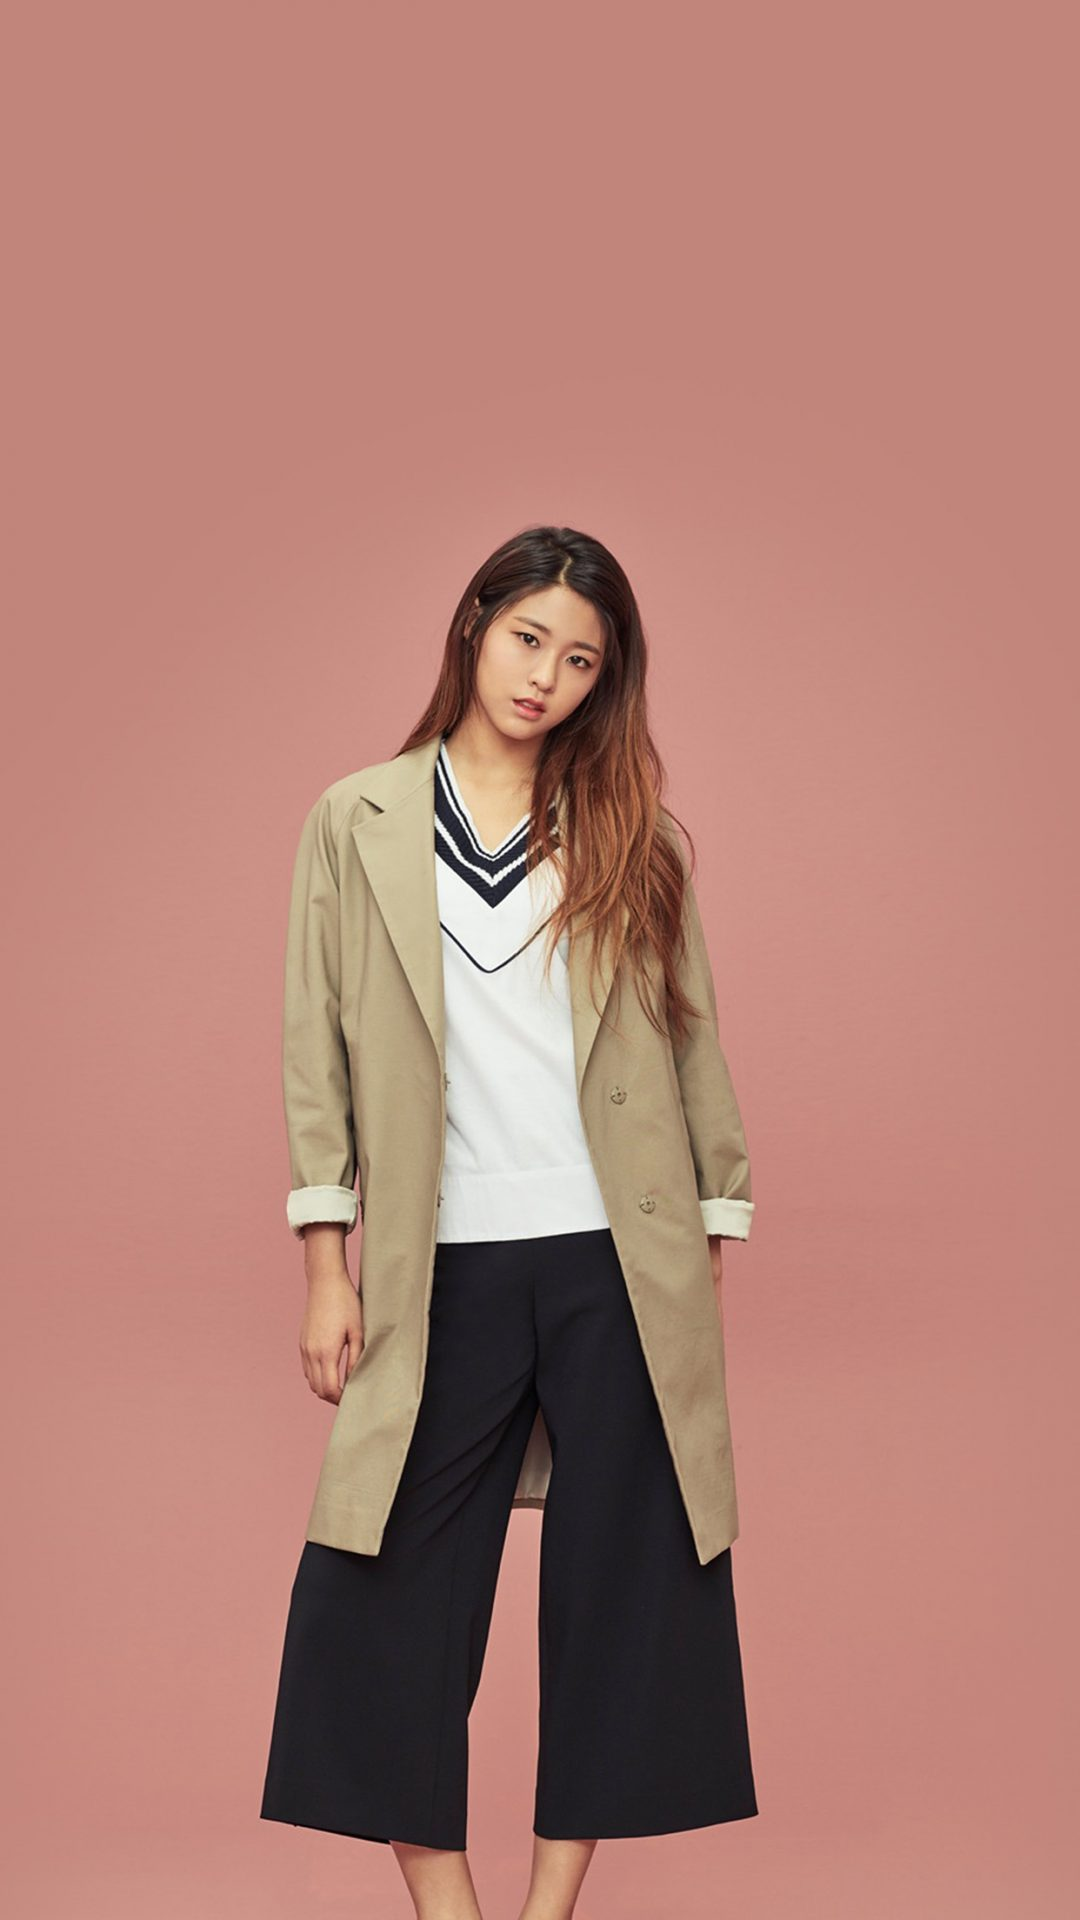 Seolhyun Aoa Pink Asian Celebrity